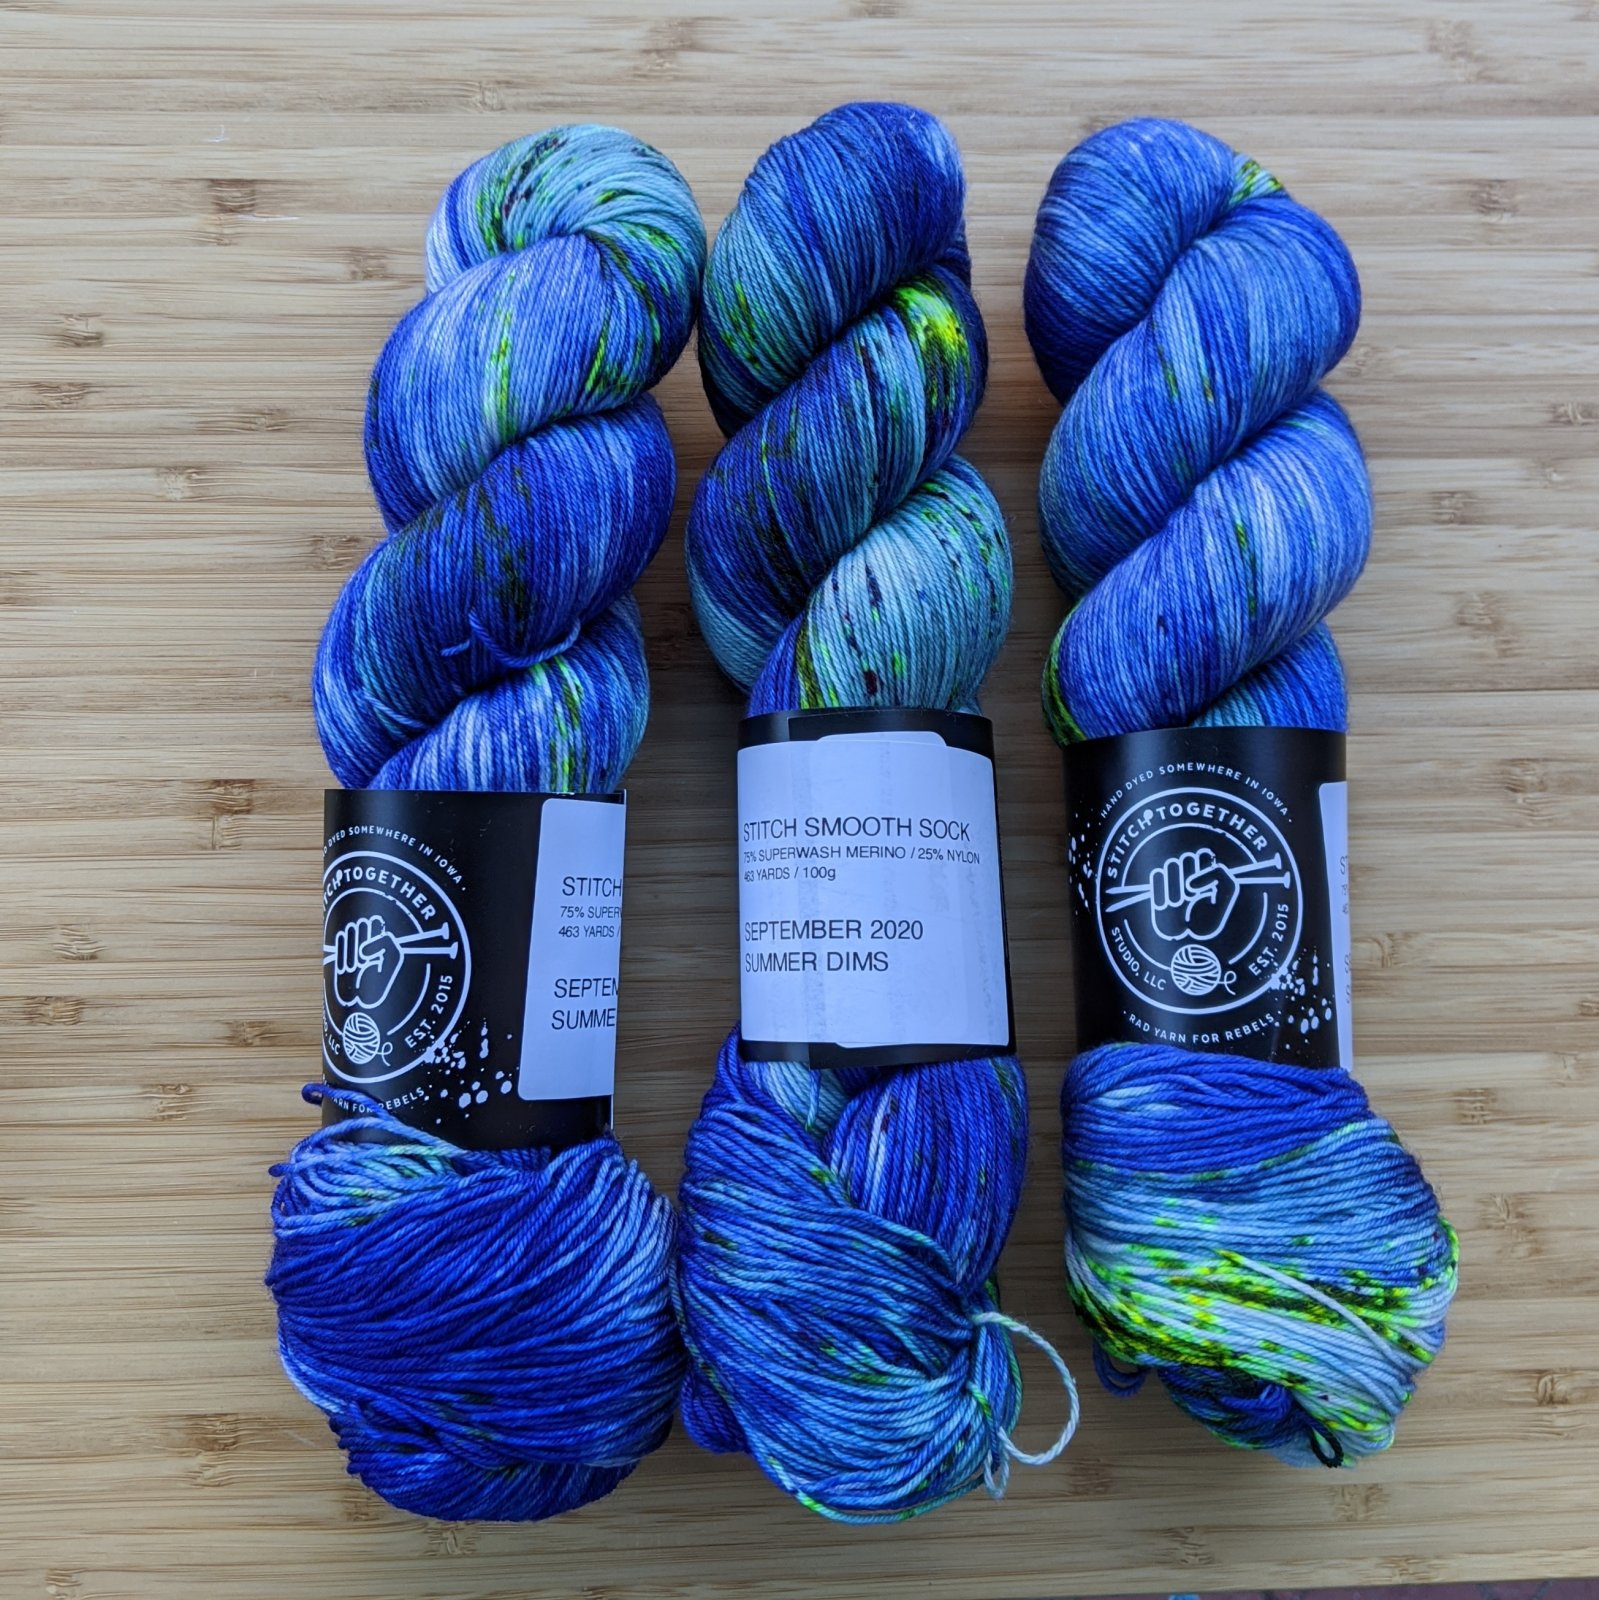 Stitch Smooth Fingering in Summer Dims